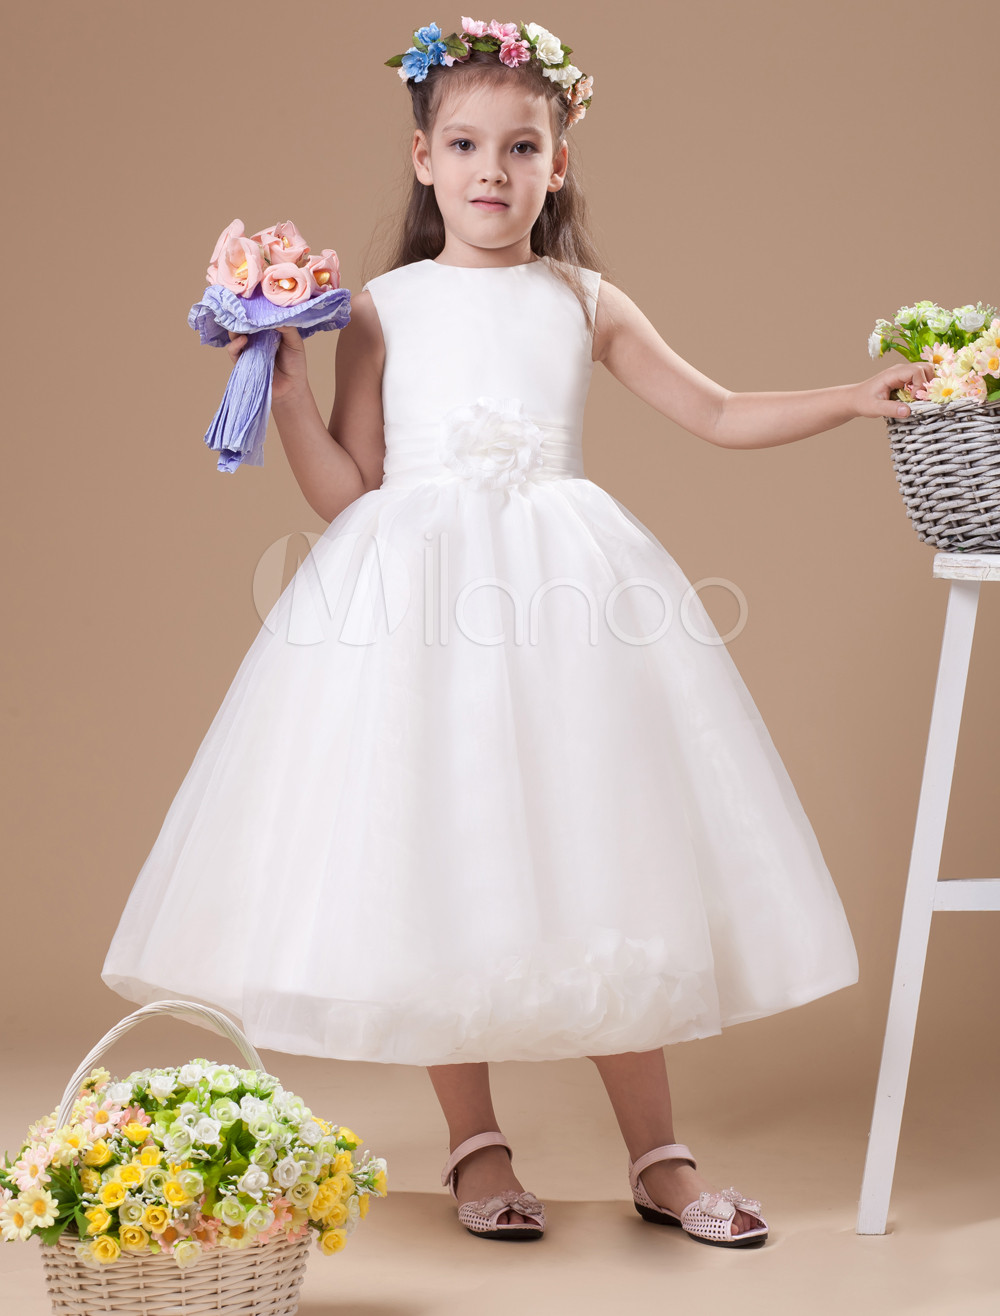 New Free Shipping Flower Girls Dresses For Wedding Gowns Girl Birthday Party Dress Long First Communion Dresses for Girls